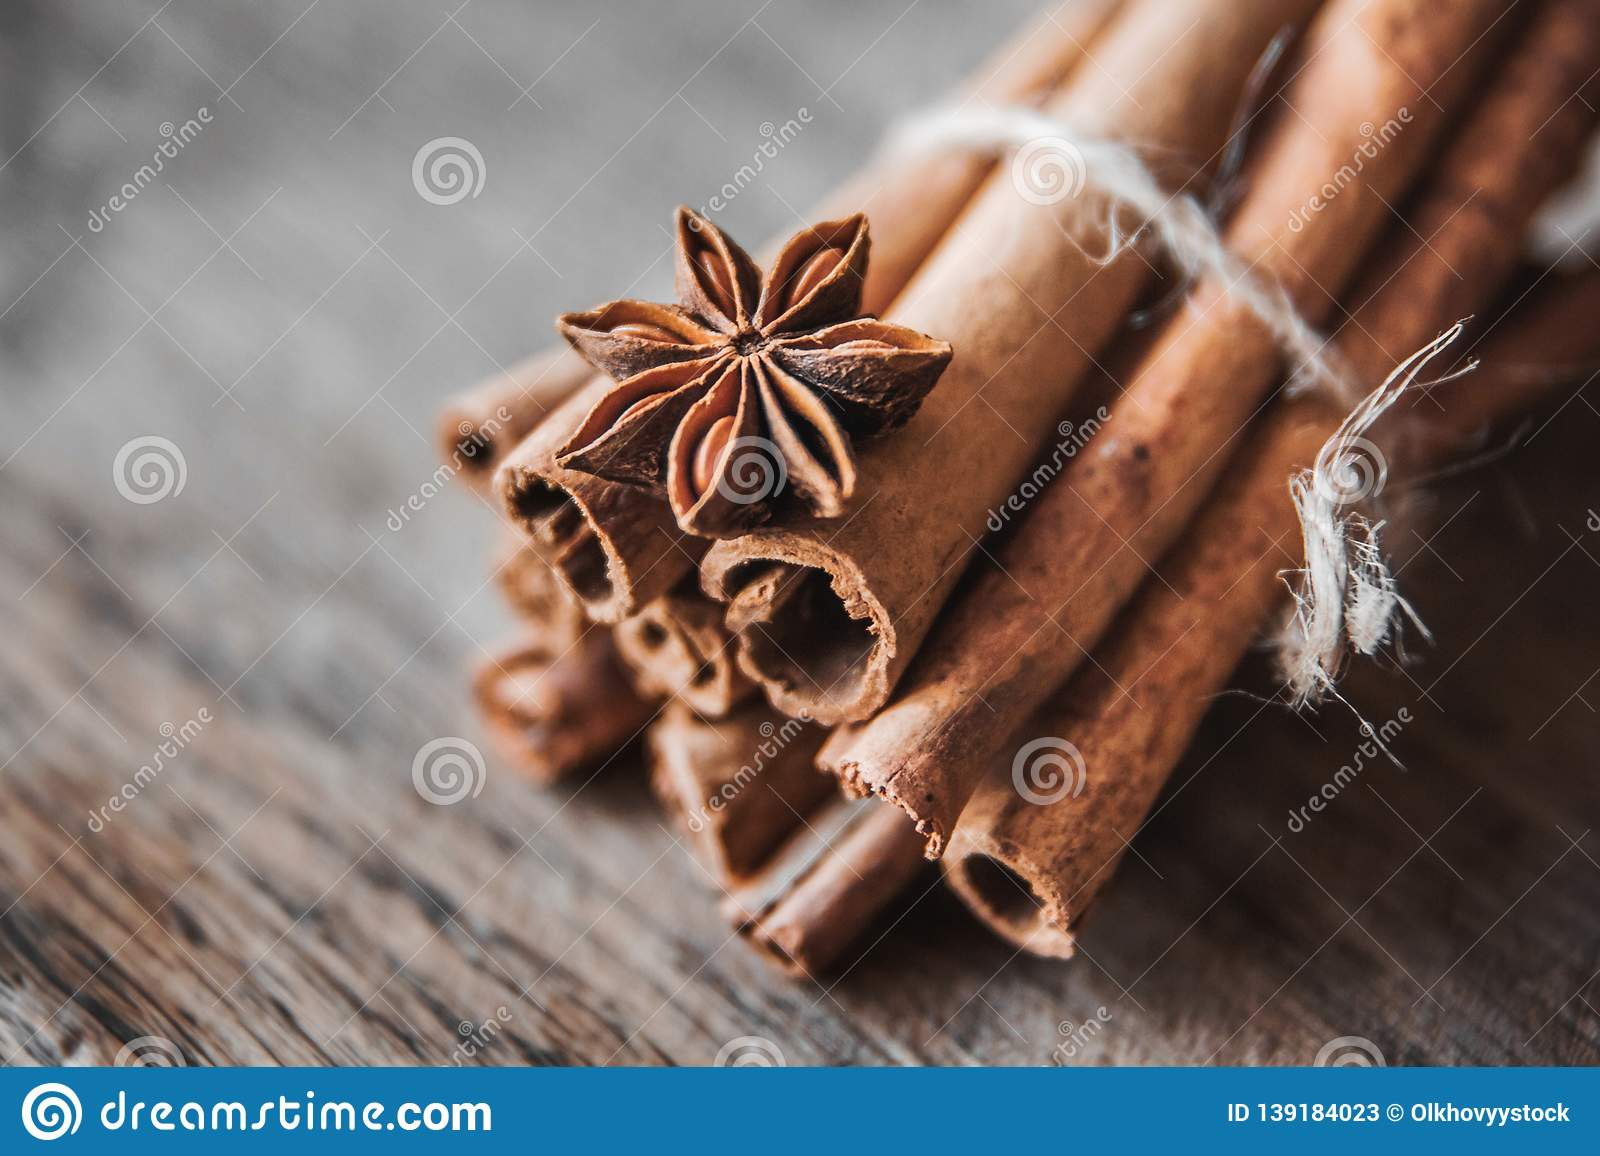 Cinnamon sticks and aniseon on the wooden surface.